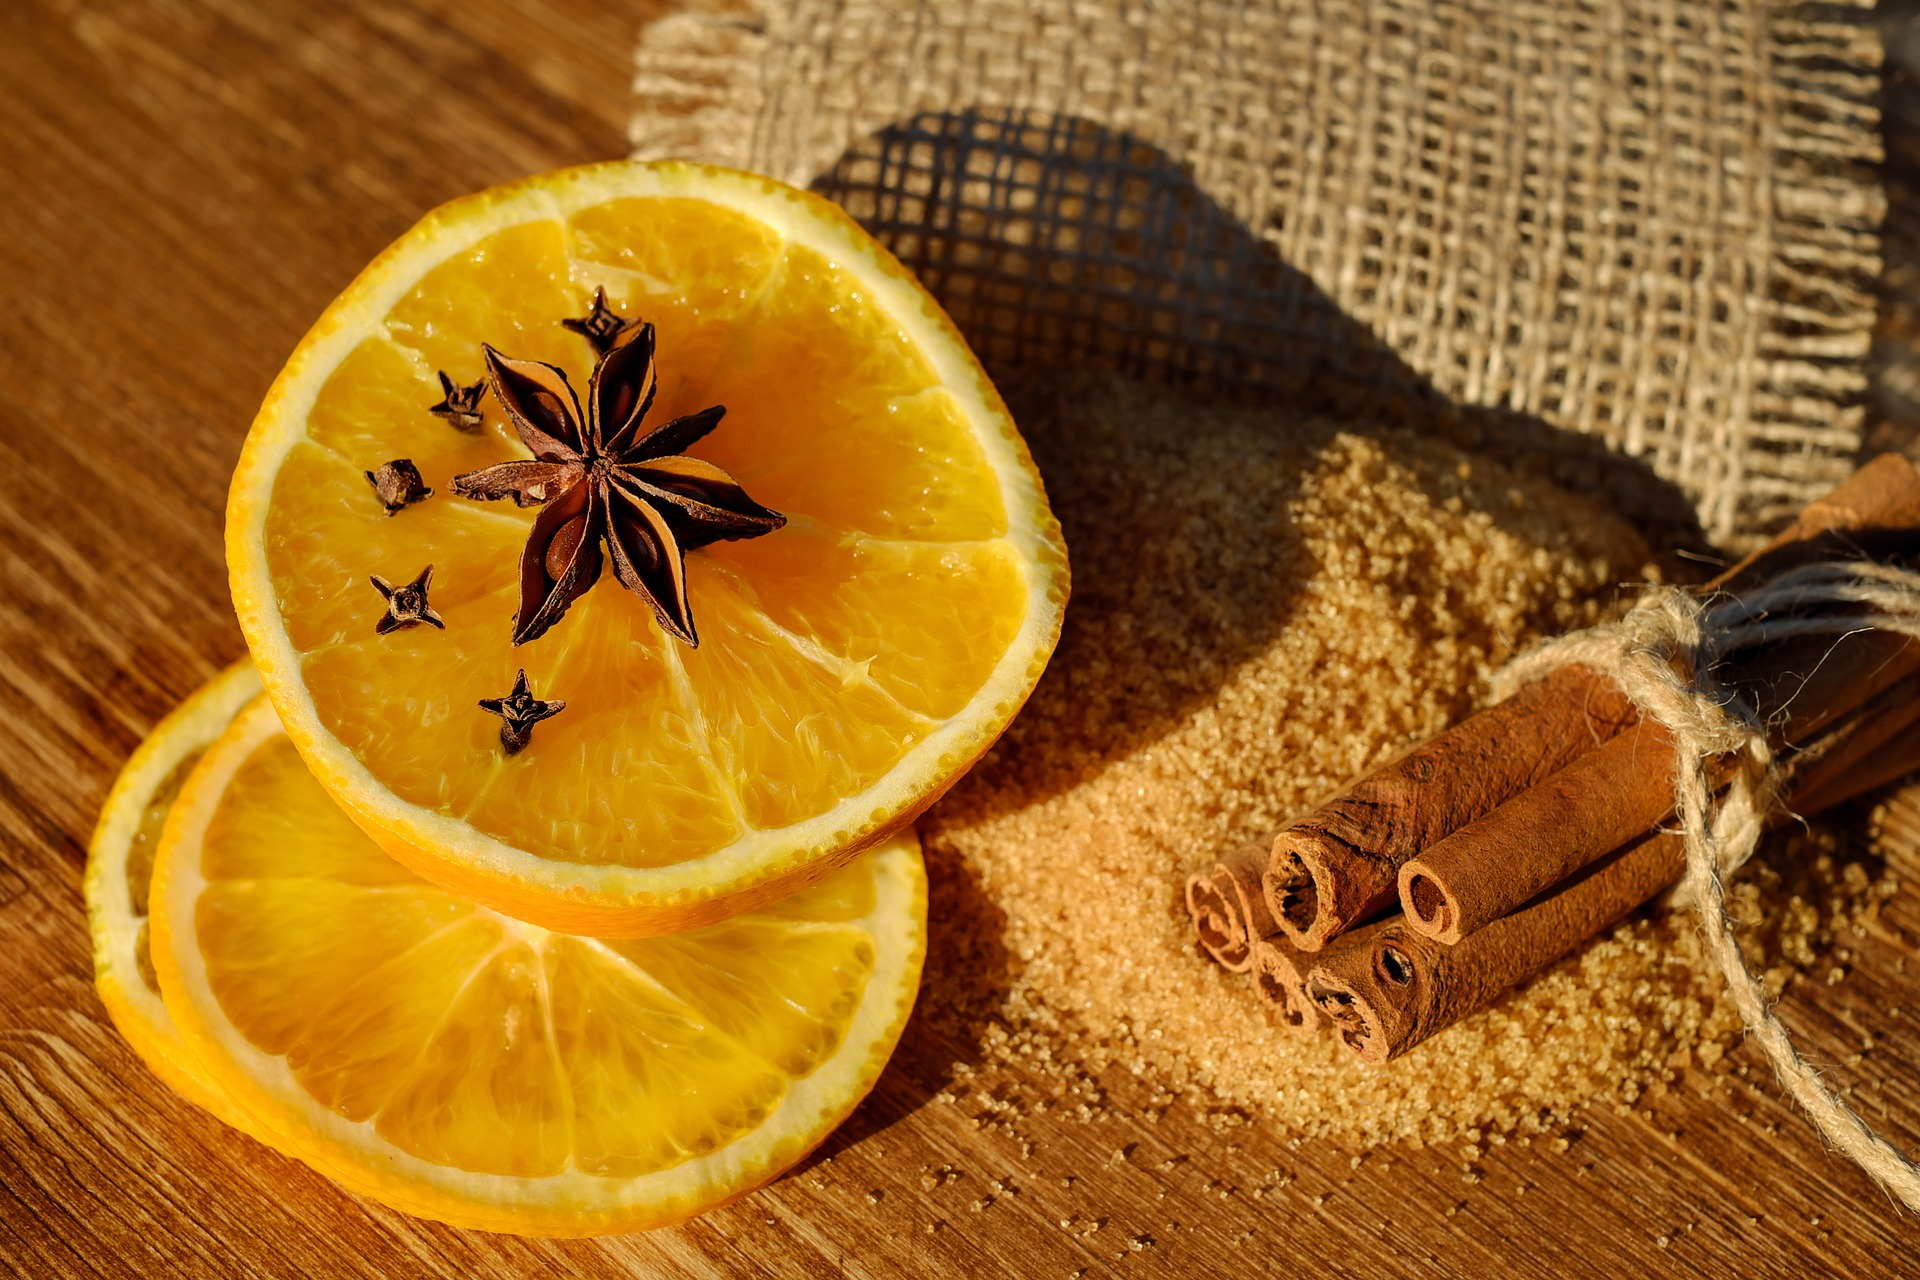 Slices of orange lie on a wooden surface, with star anise on top and a bundle of cinnamon to the right,